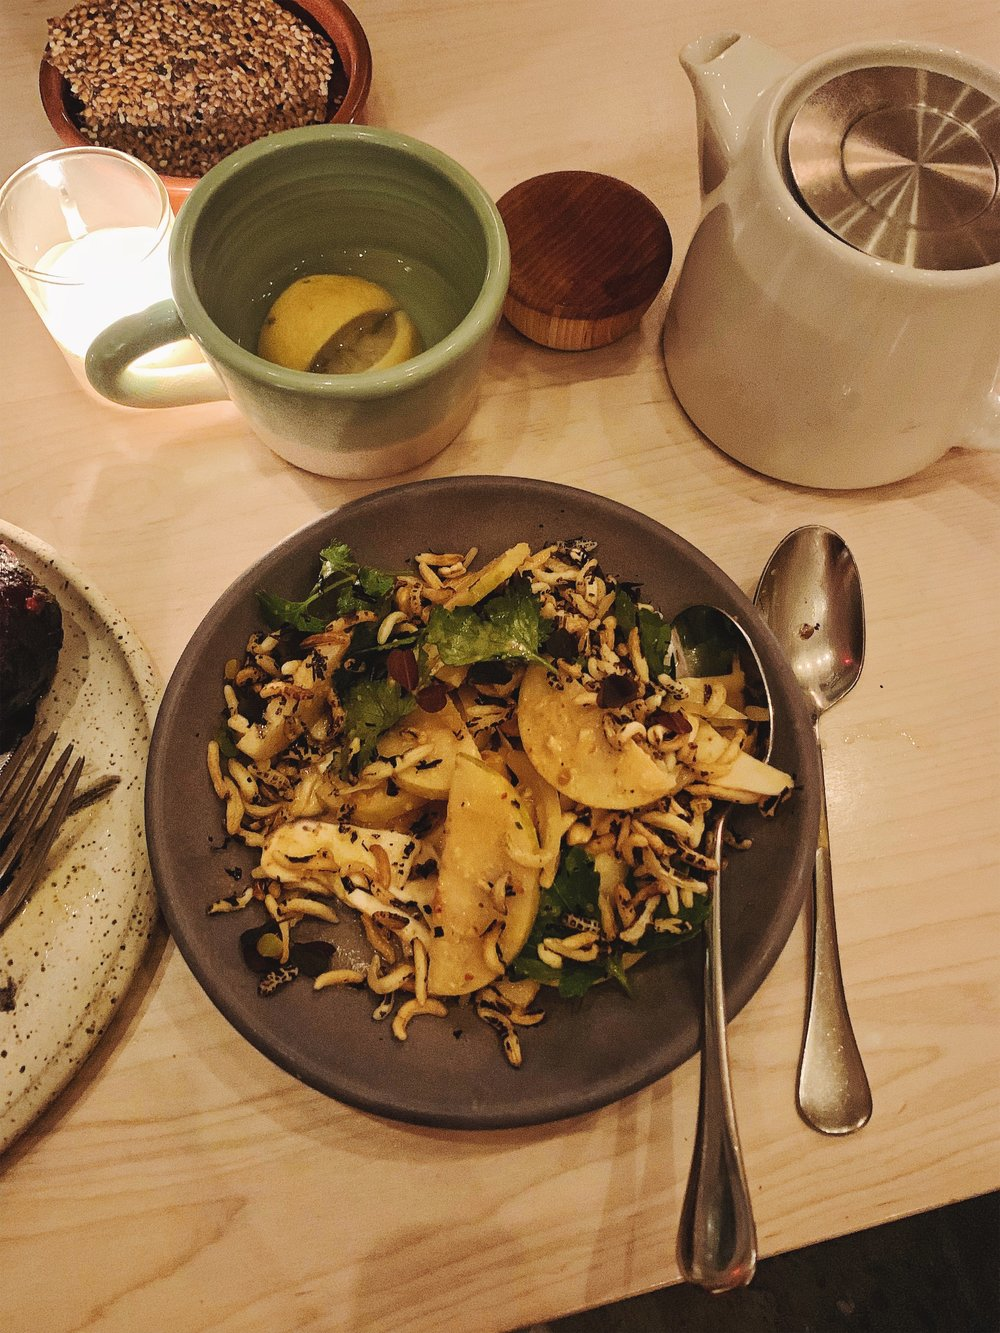 Puffed rice, mushroom and pear salad with herbs at Tusk